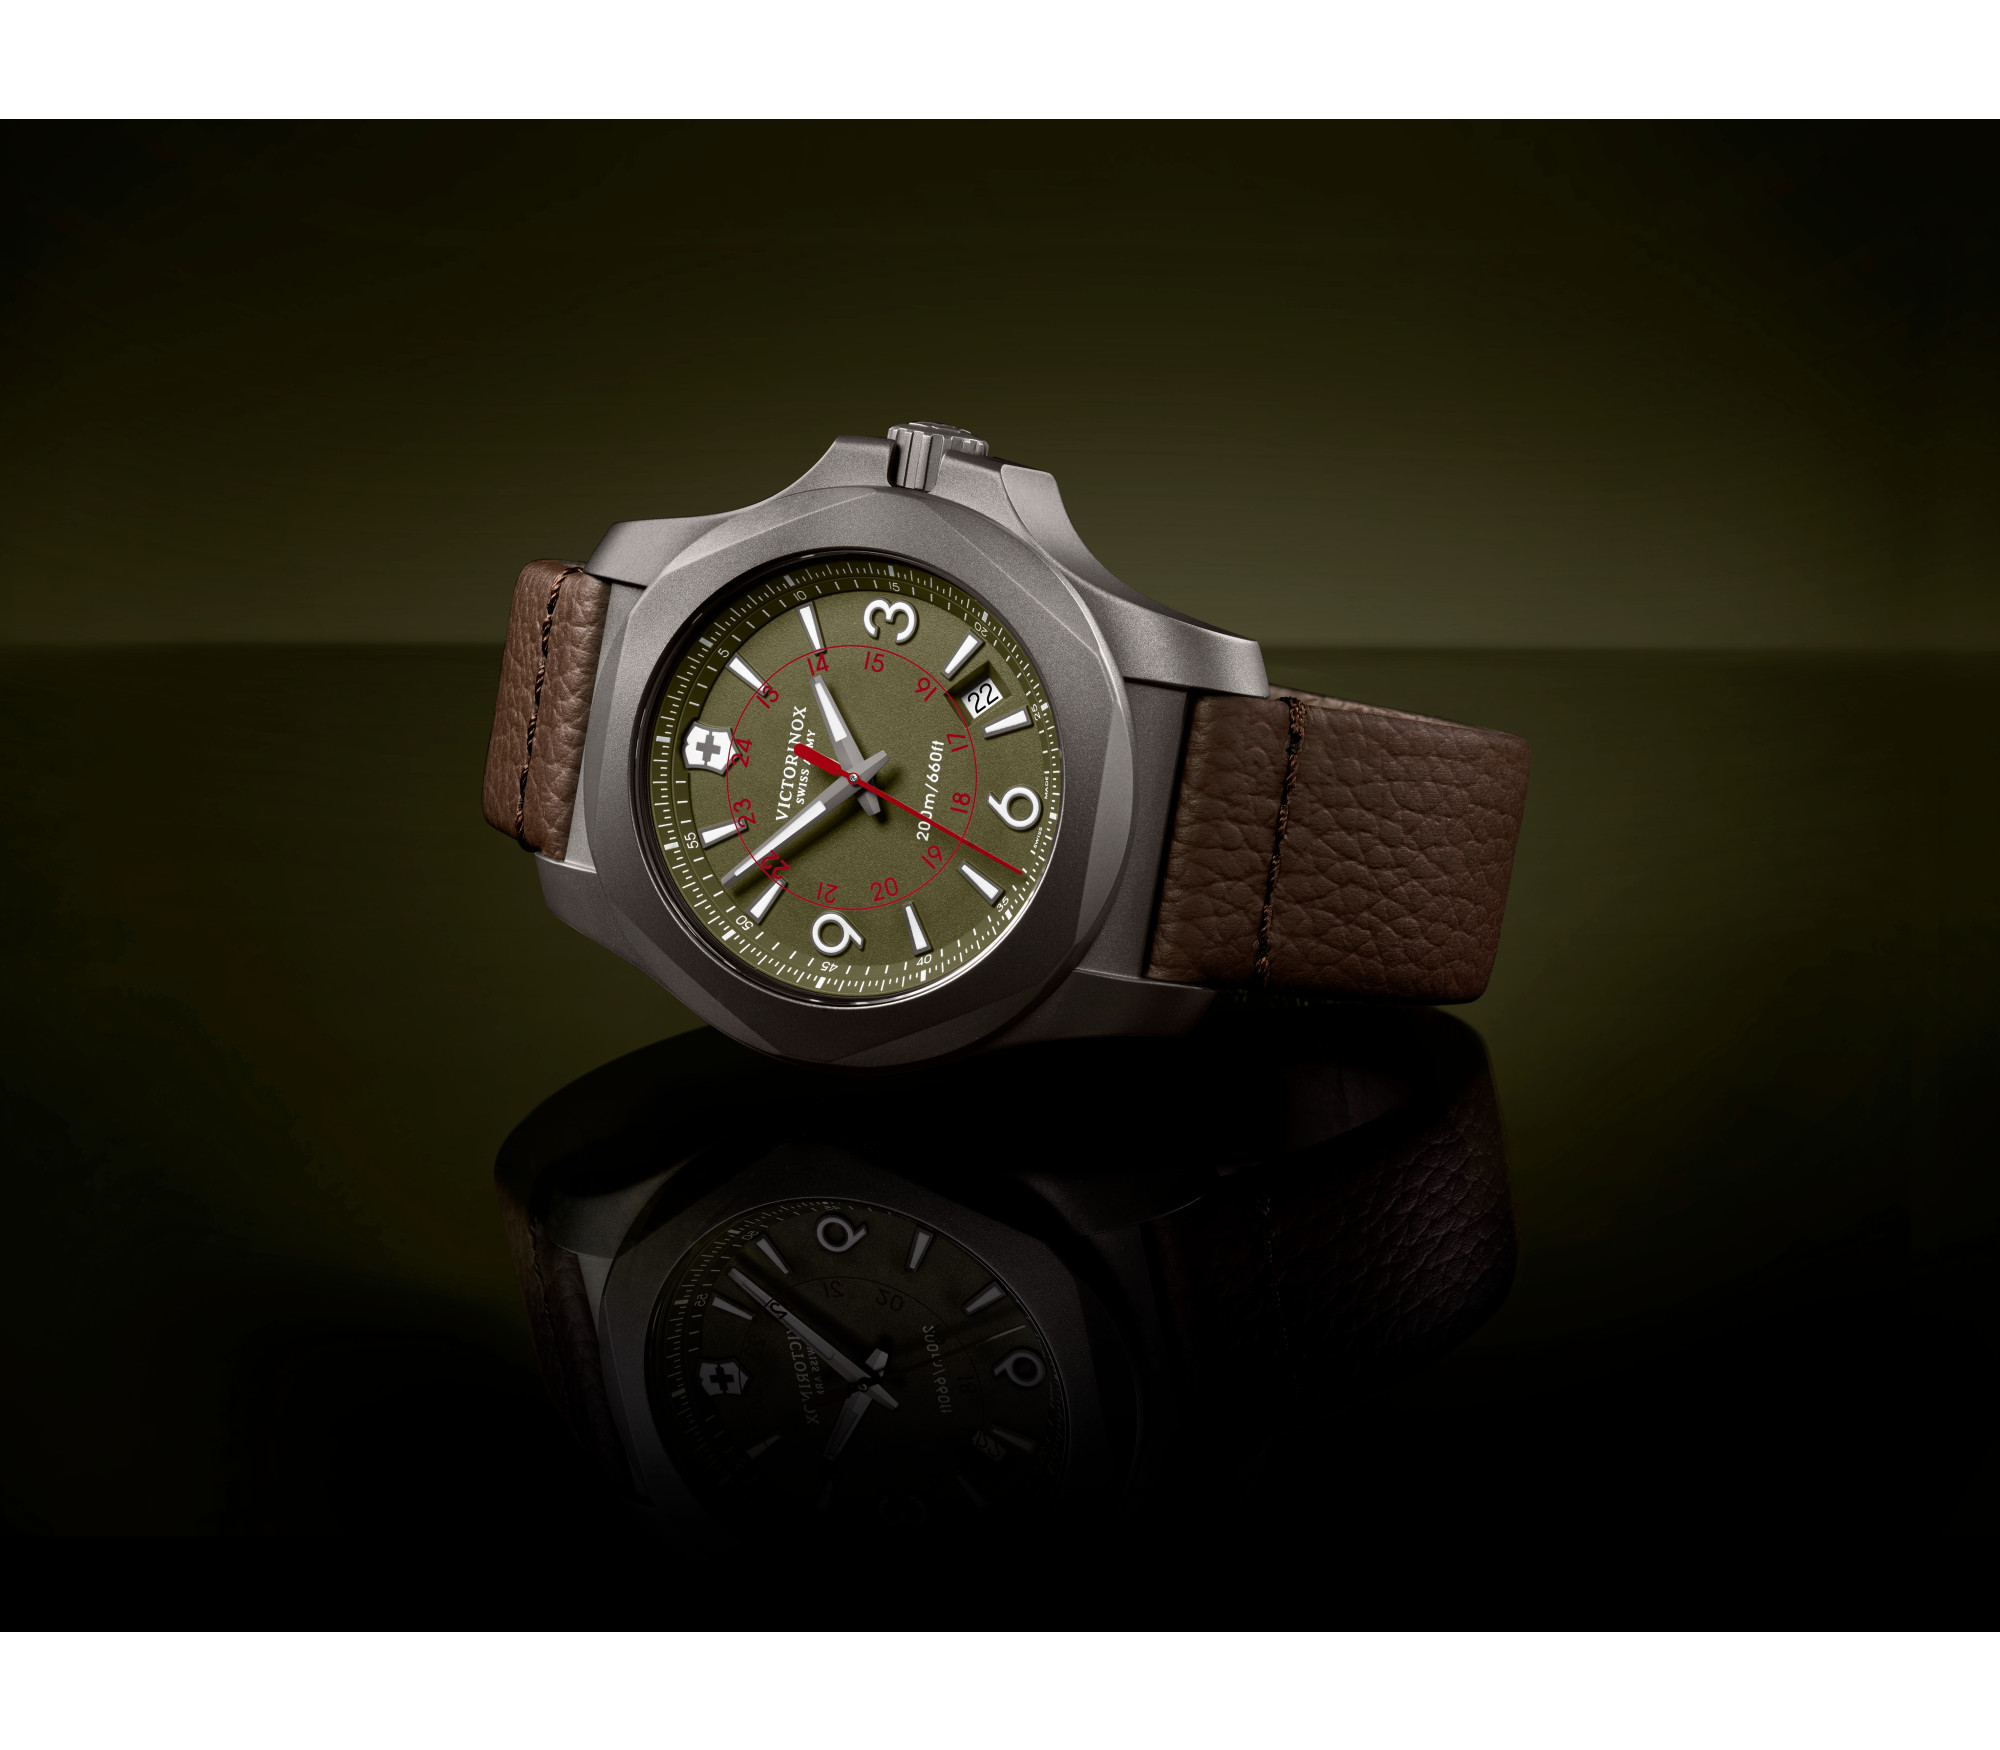 The Victorinox Swiss Army I N O X Titanium Watch 50